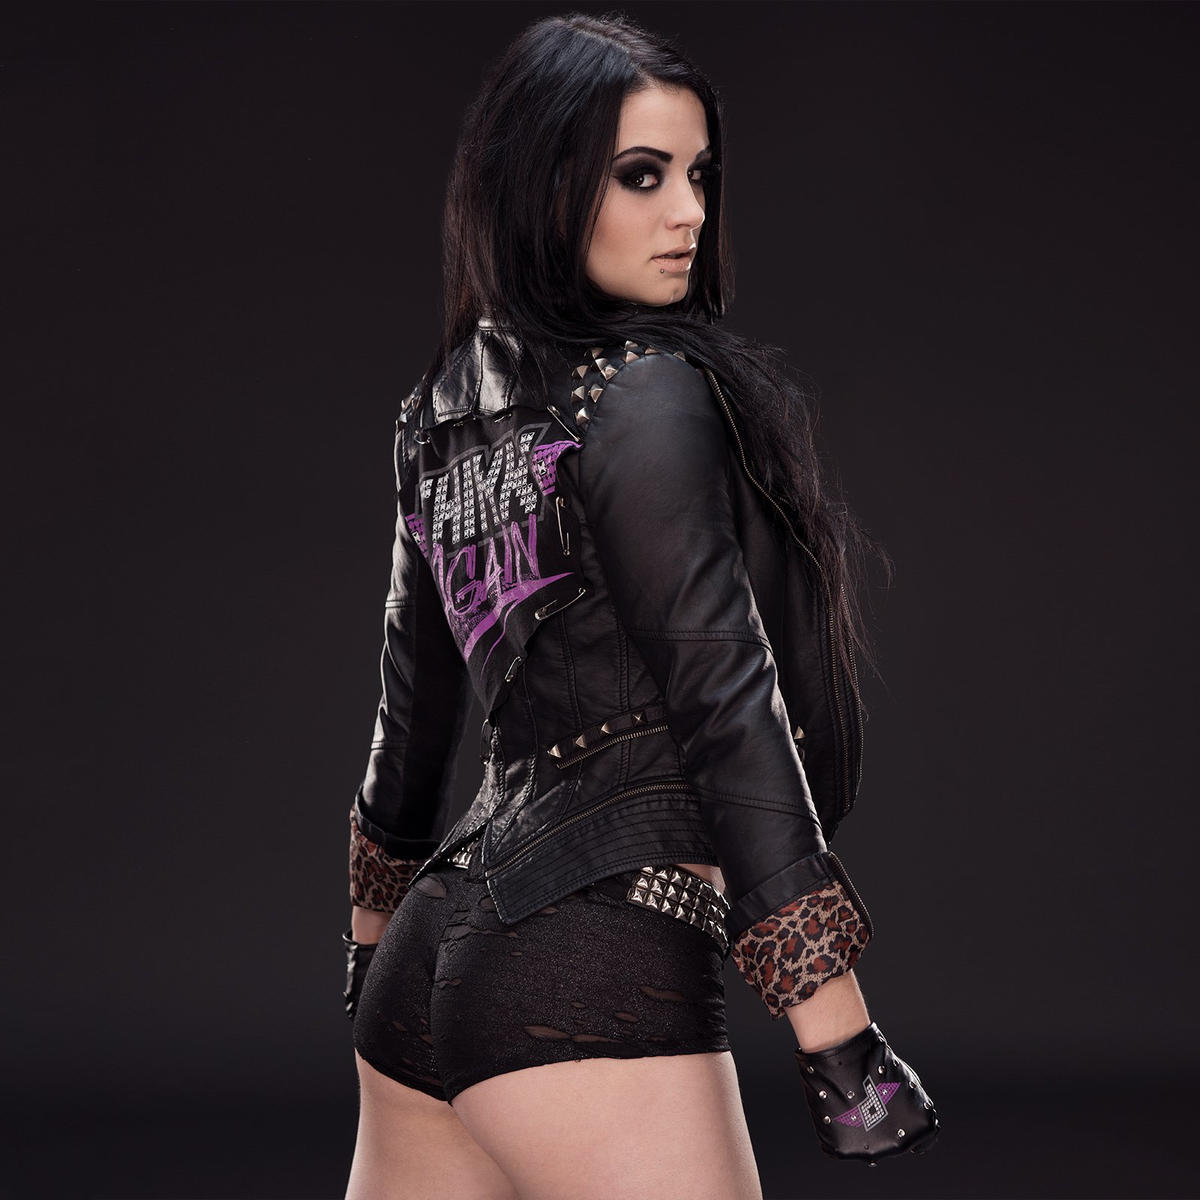 Foto Paige (WWE) naked (16 foto and video), Pussy, Paparazzi, Feet, bra 2019